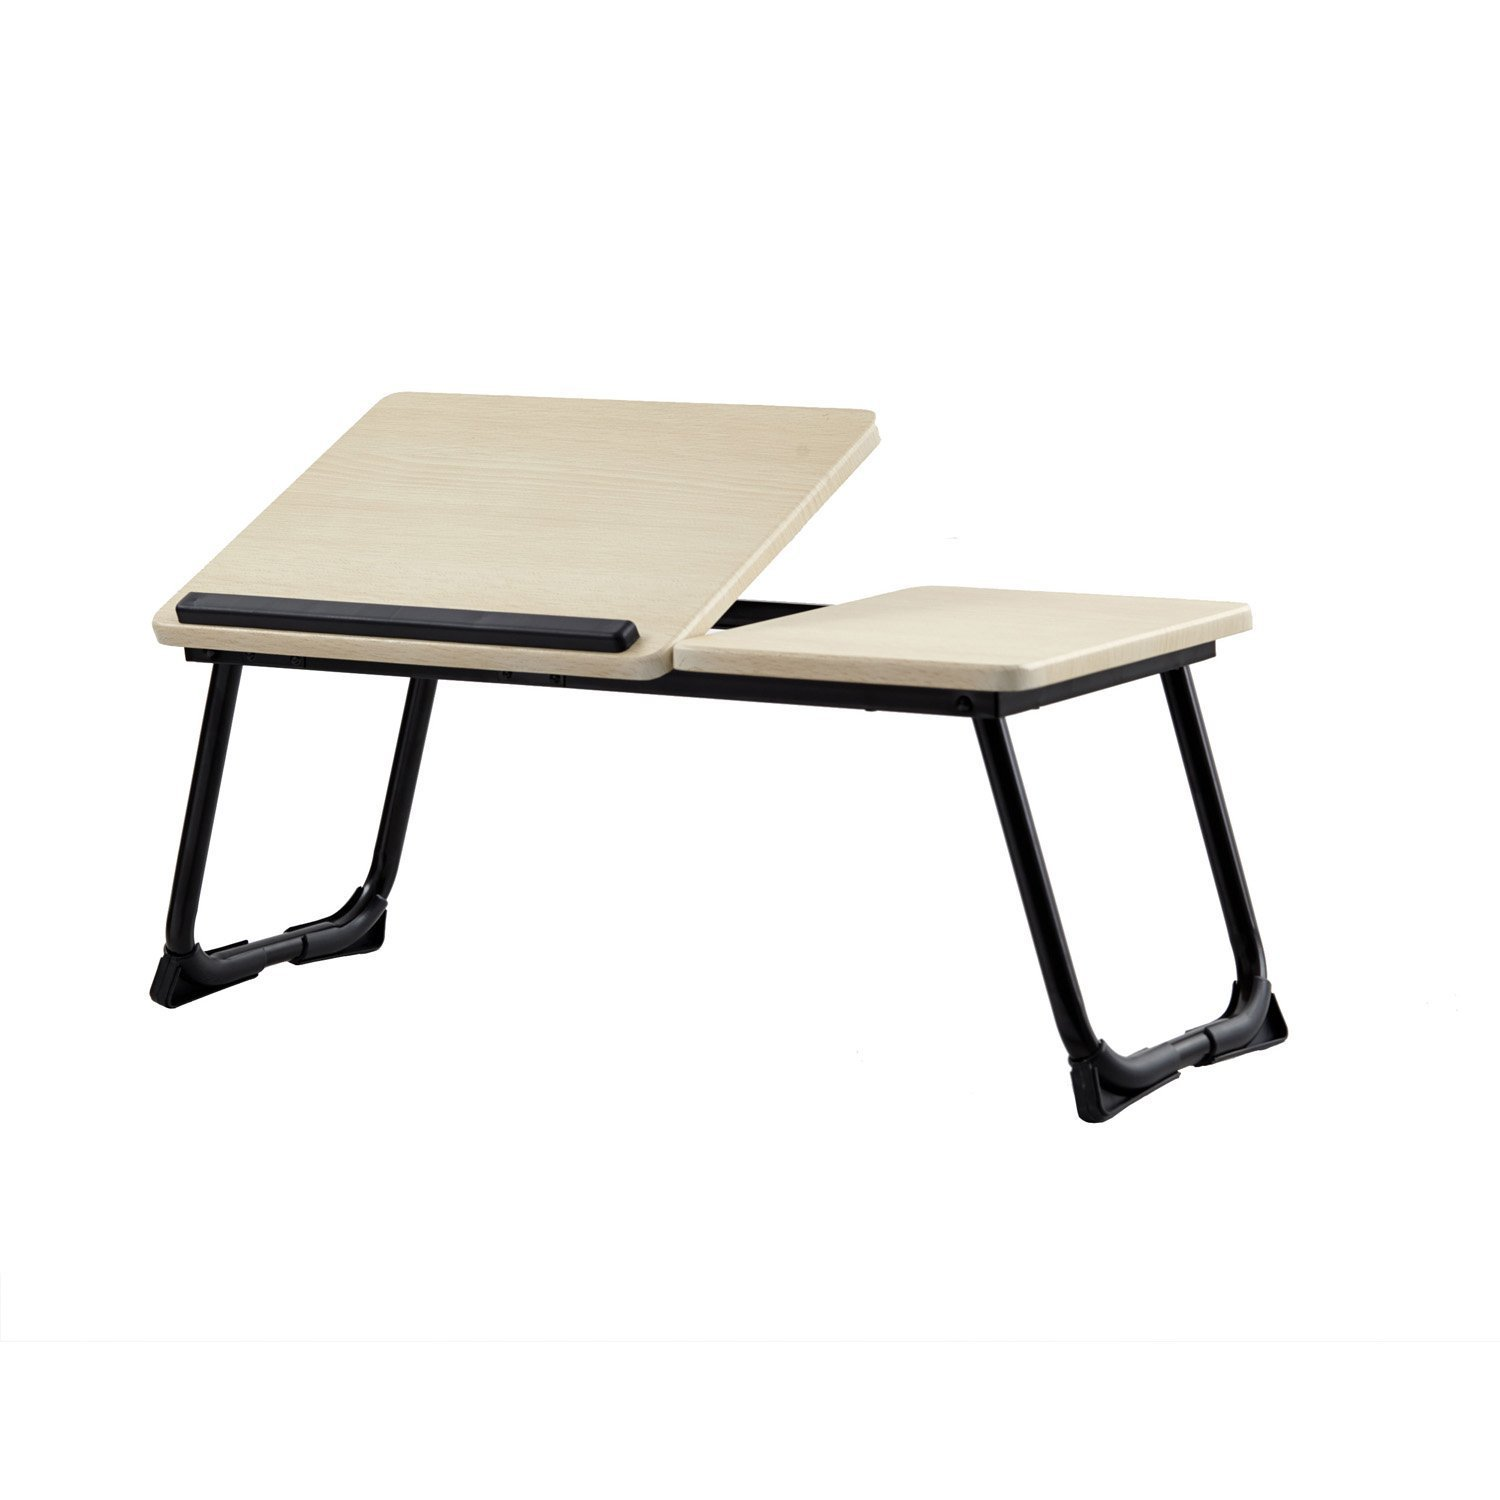 GreenForest Laptop Desk Stand Foldable Portable Large Size Tilting Home and Office Supplies MDF Lap Desk Bed Tray Beige